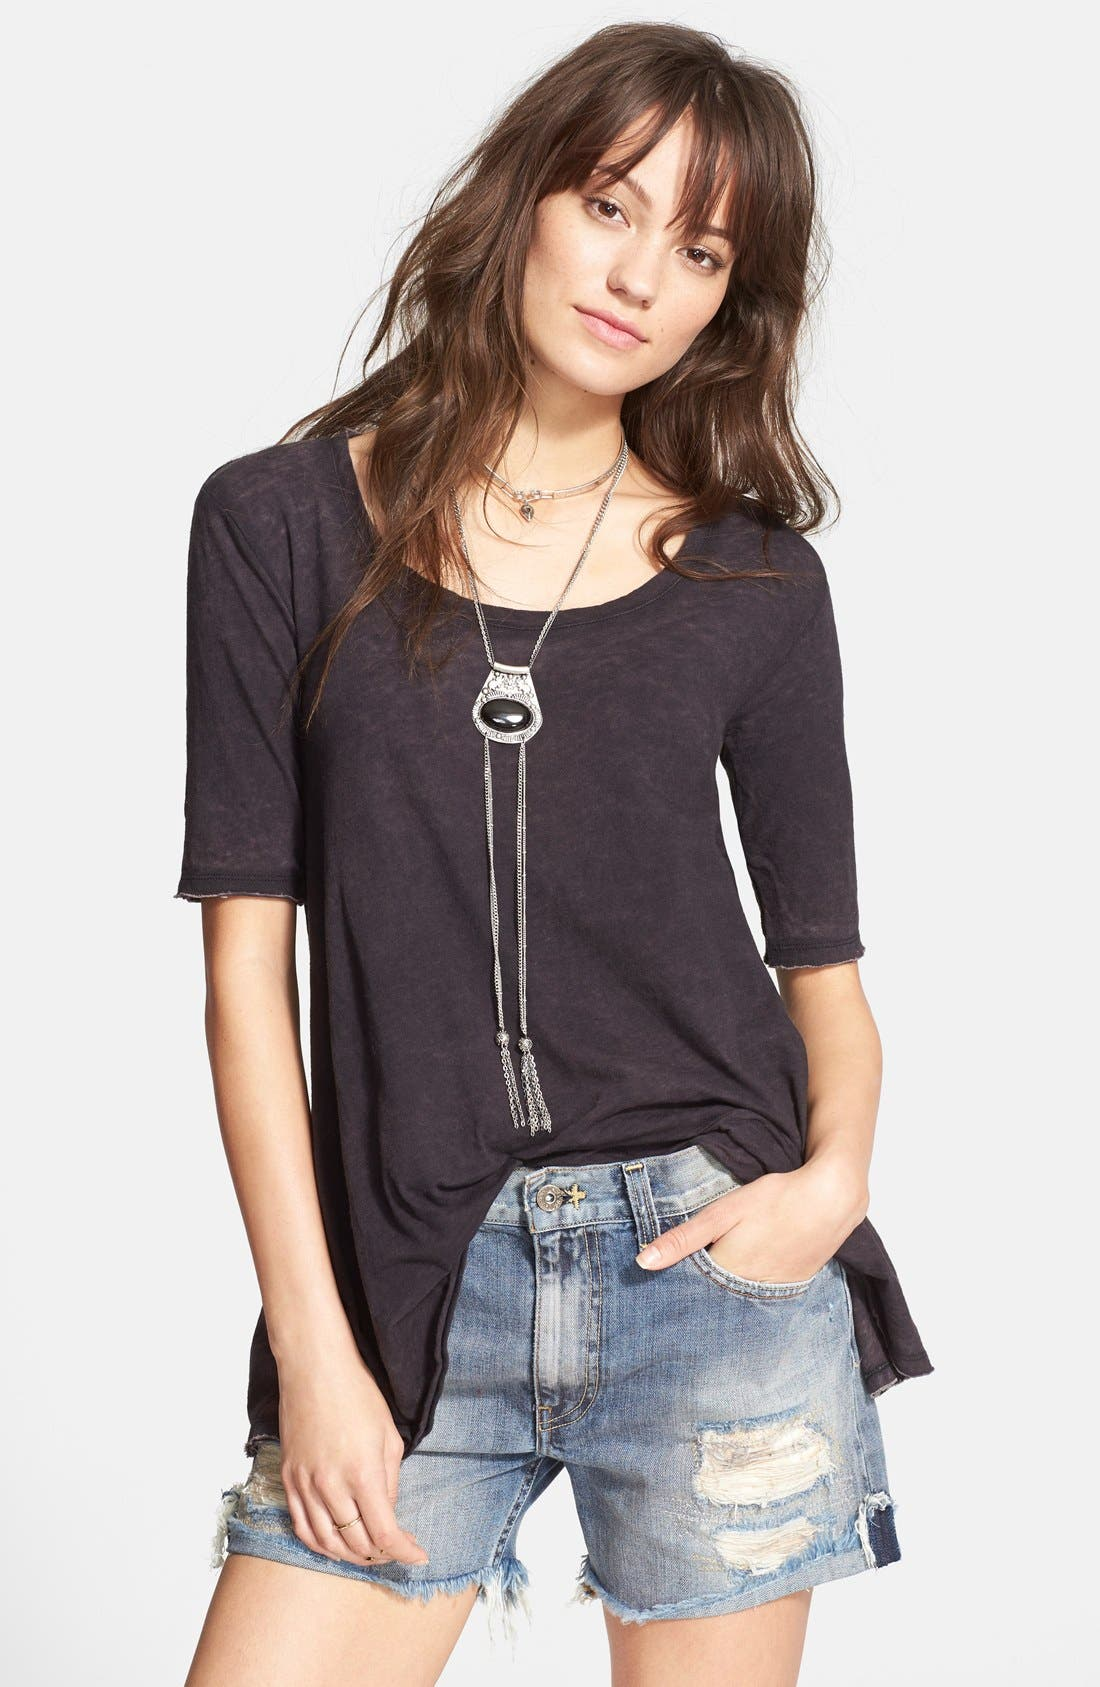 FREE PEOPLE, 'Melrose' Peplum Hem Tee, Main thumbnail 1, color, 001